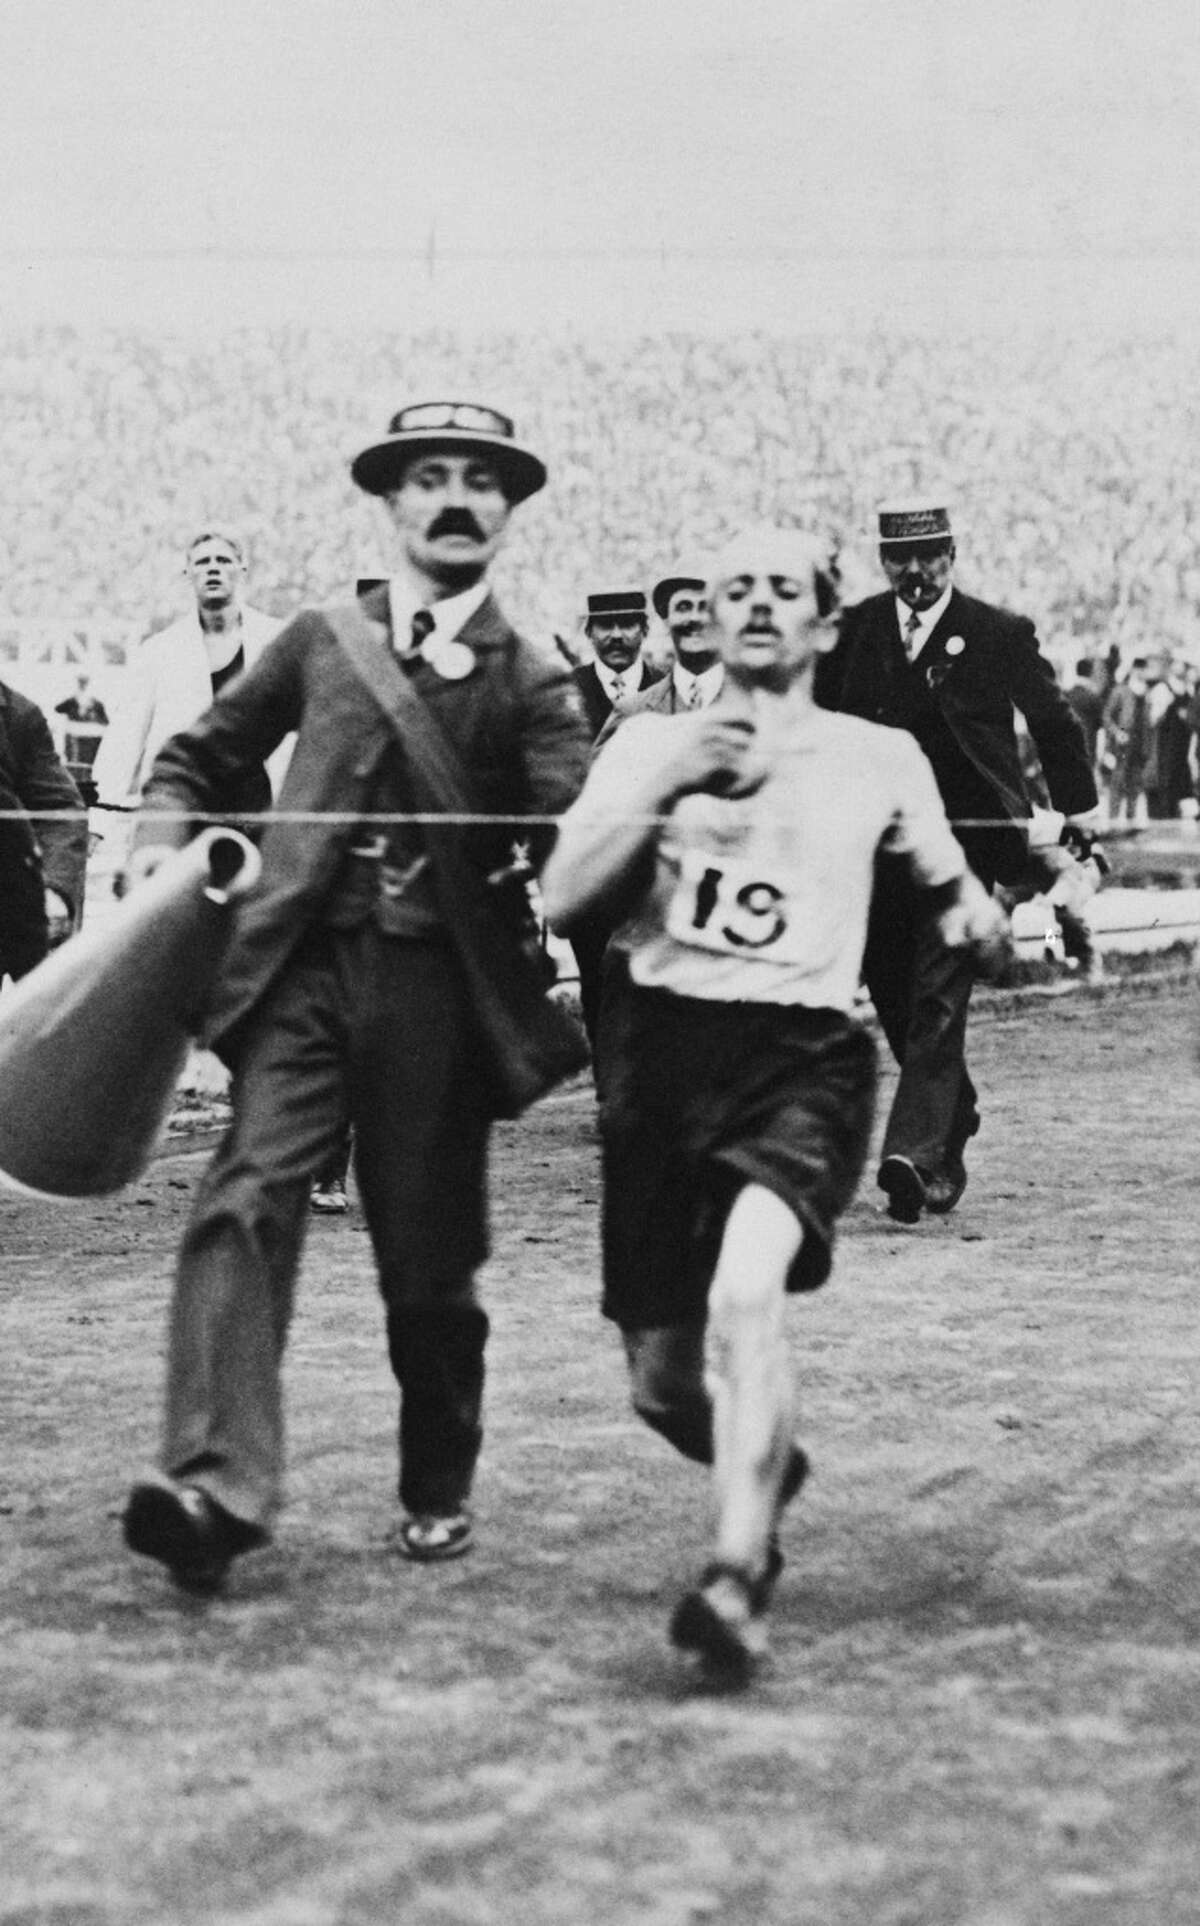 Dorando Pietri (1885-1942) of Italy, on the verge of collapse, is helped across the finish line in the Marathon event of the Olympic Games in London, July 24, 1908. He was subsequently disqualified and the title was given to John Hayes of the USA.